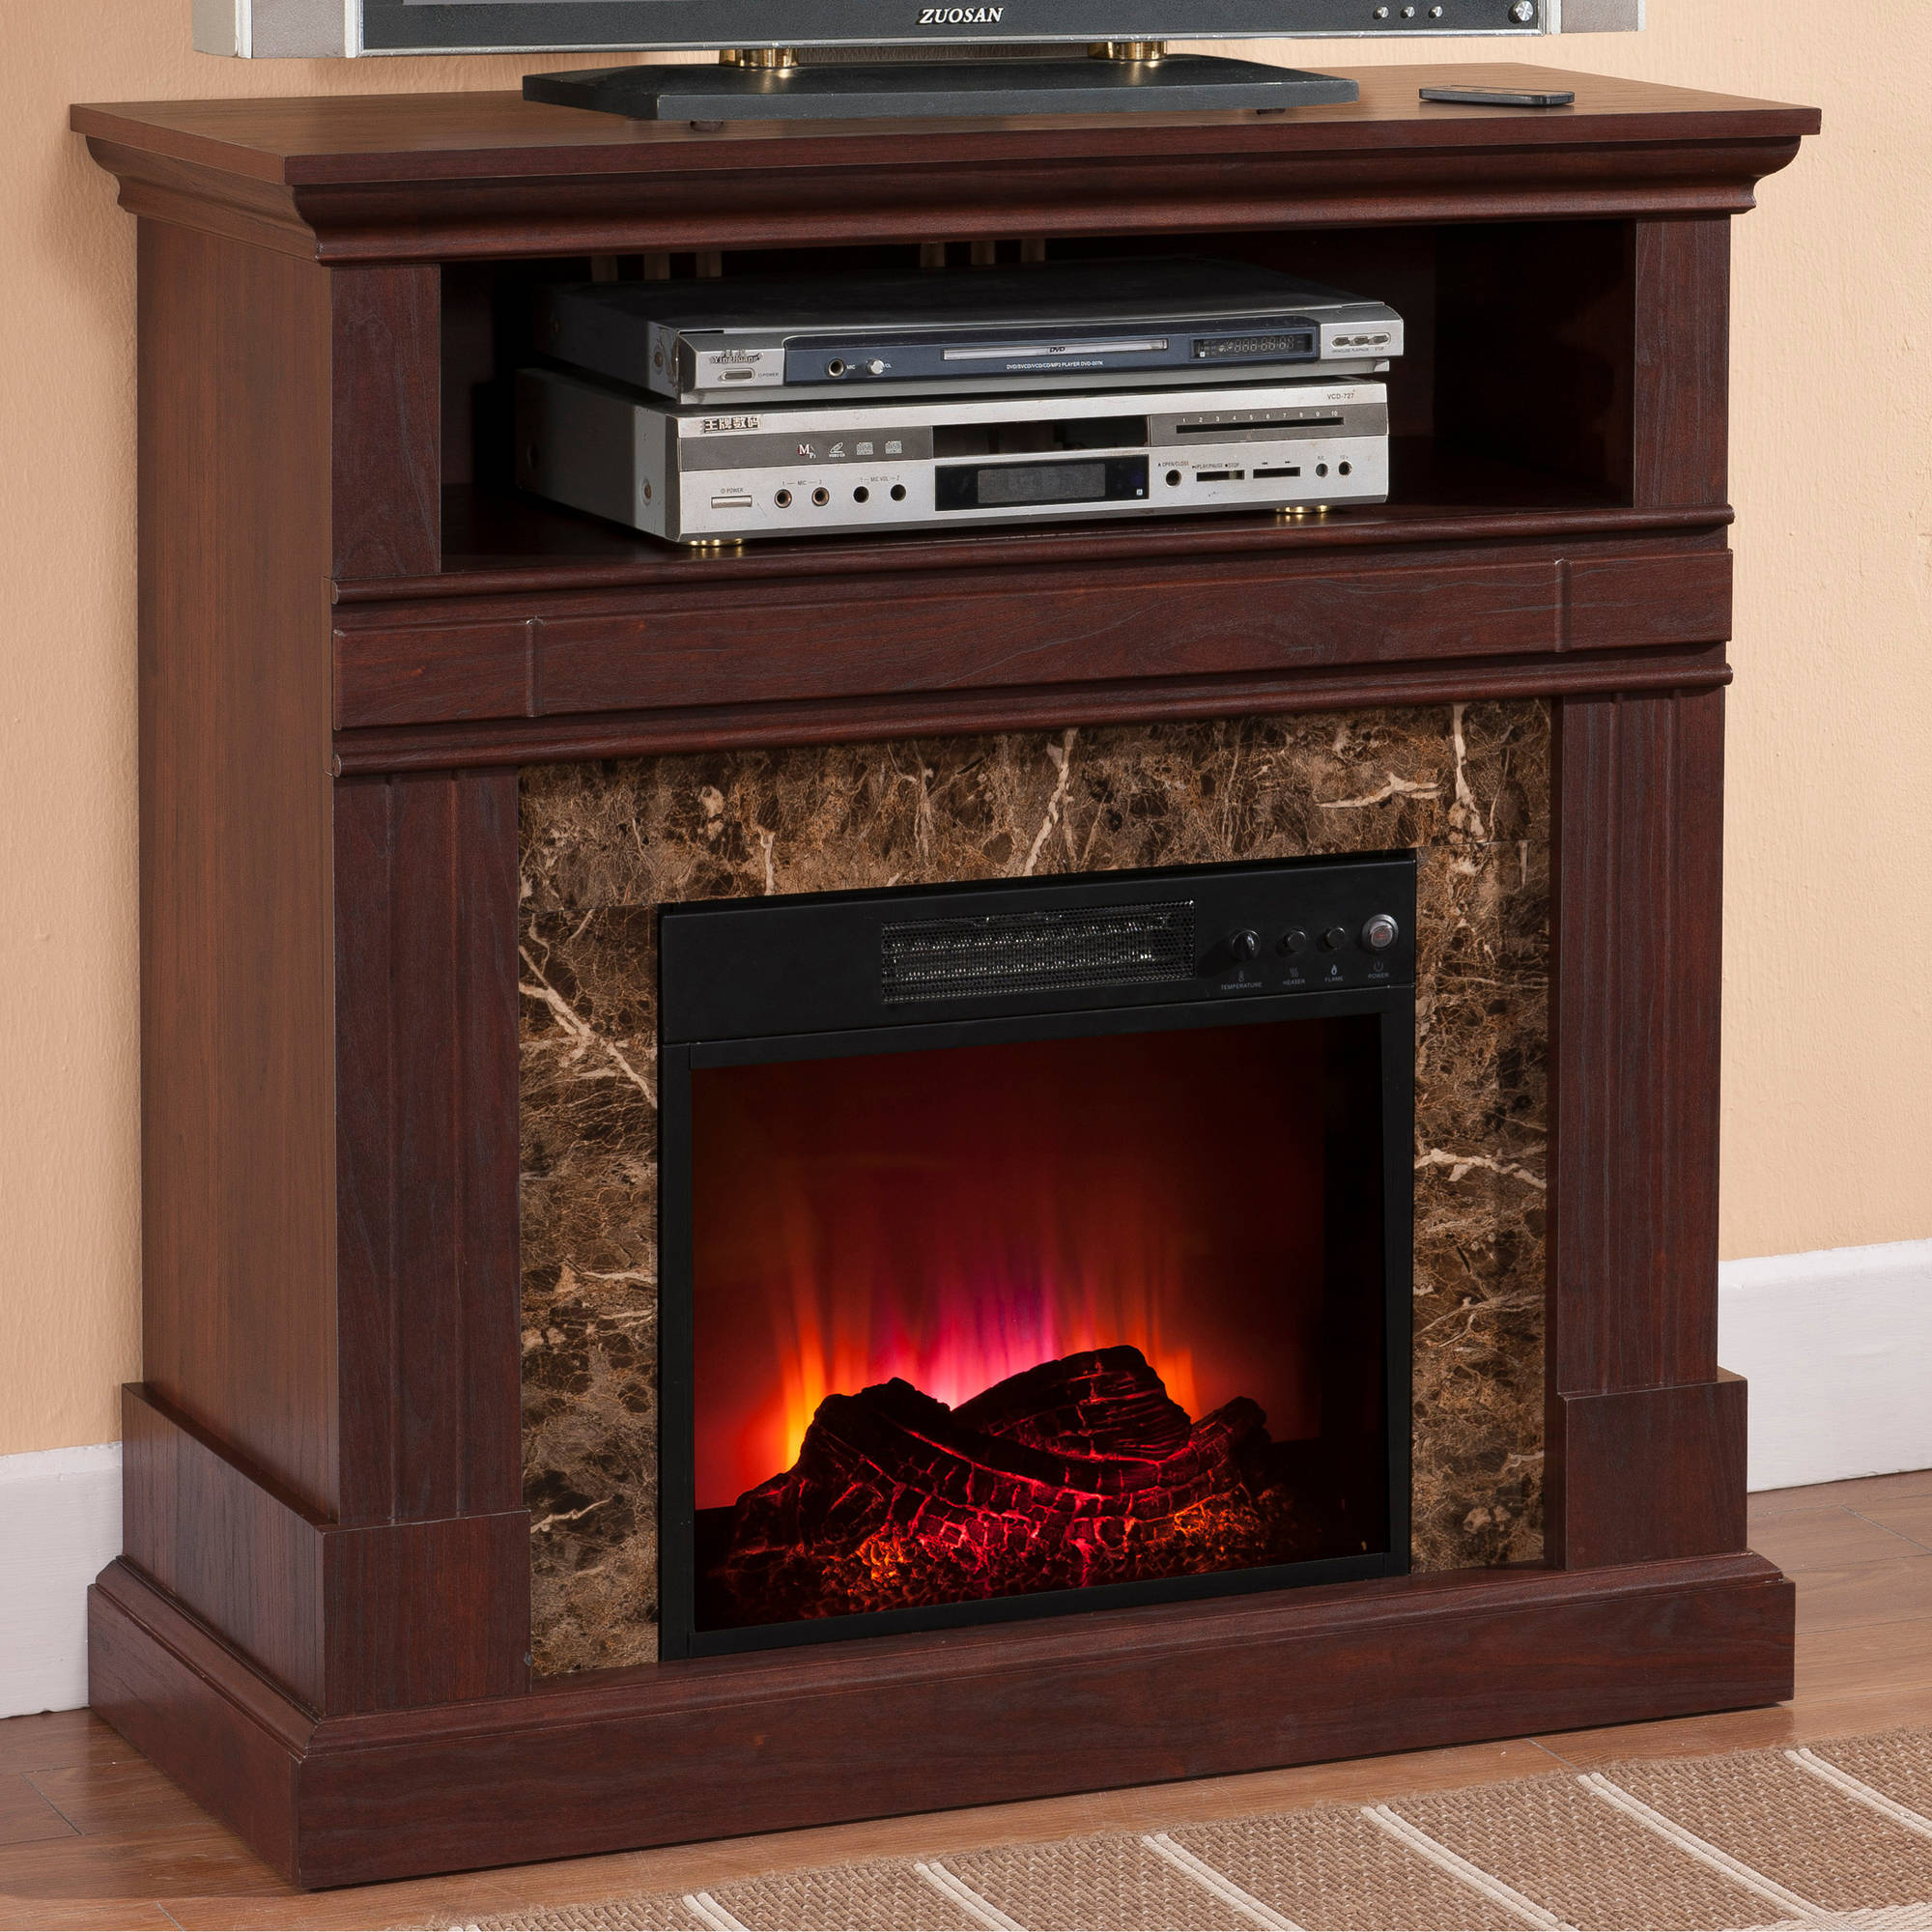 "Prokonian Electric Fireplace with 36"" Mantle B003, Deep Walnut"